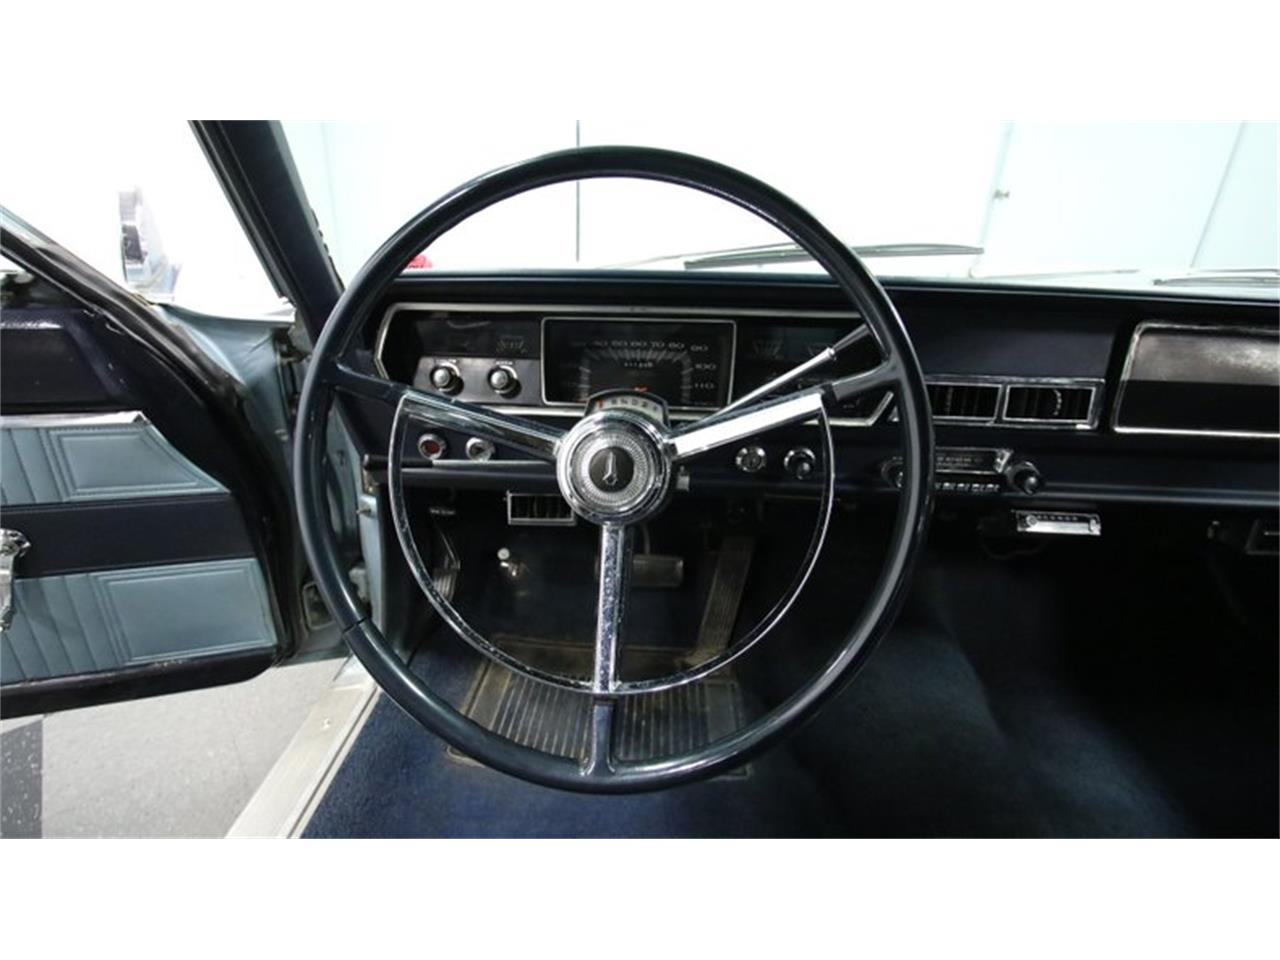 1967 Plymouth Belvedere (CC-1361791) for sale in Lithia Springs, Georgia